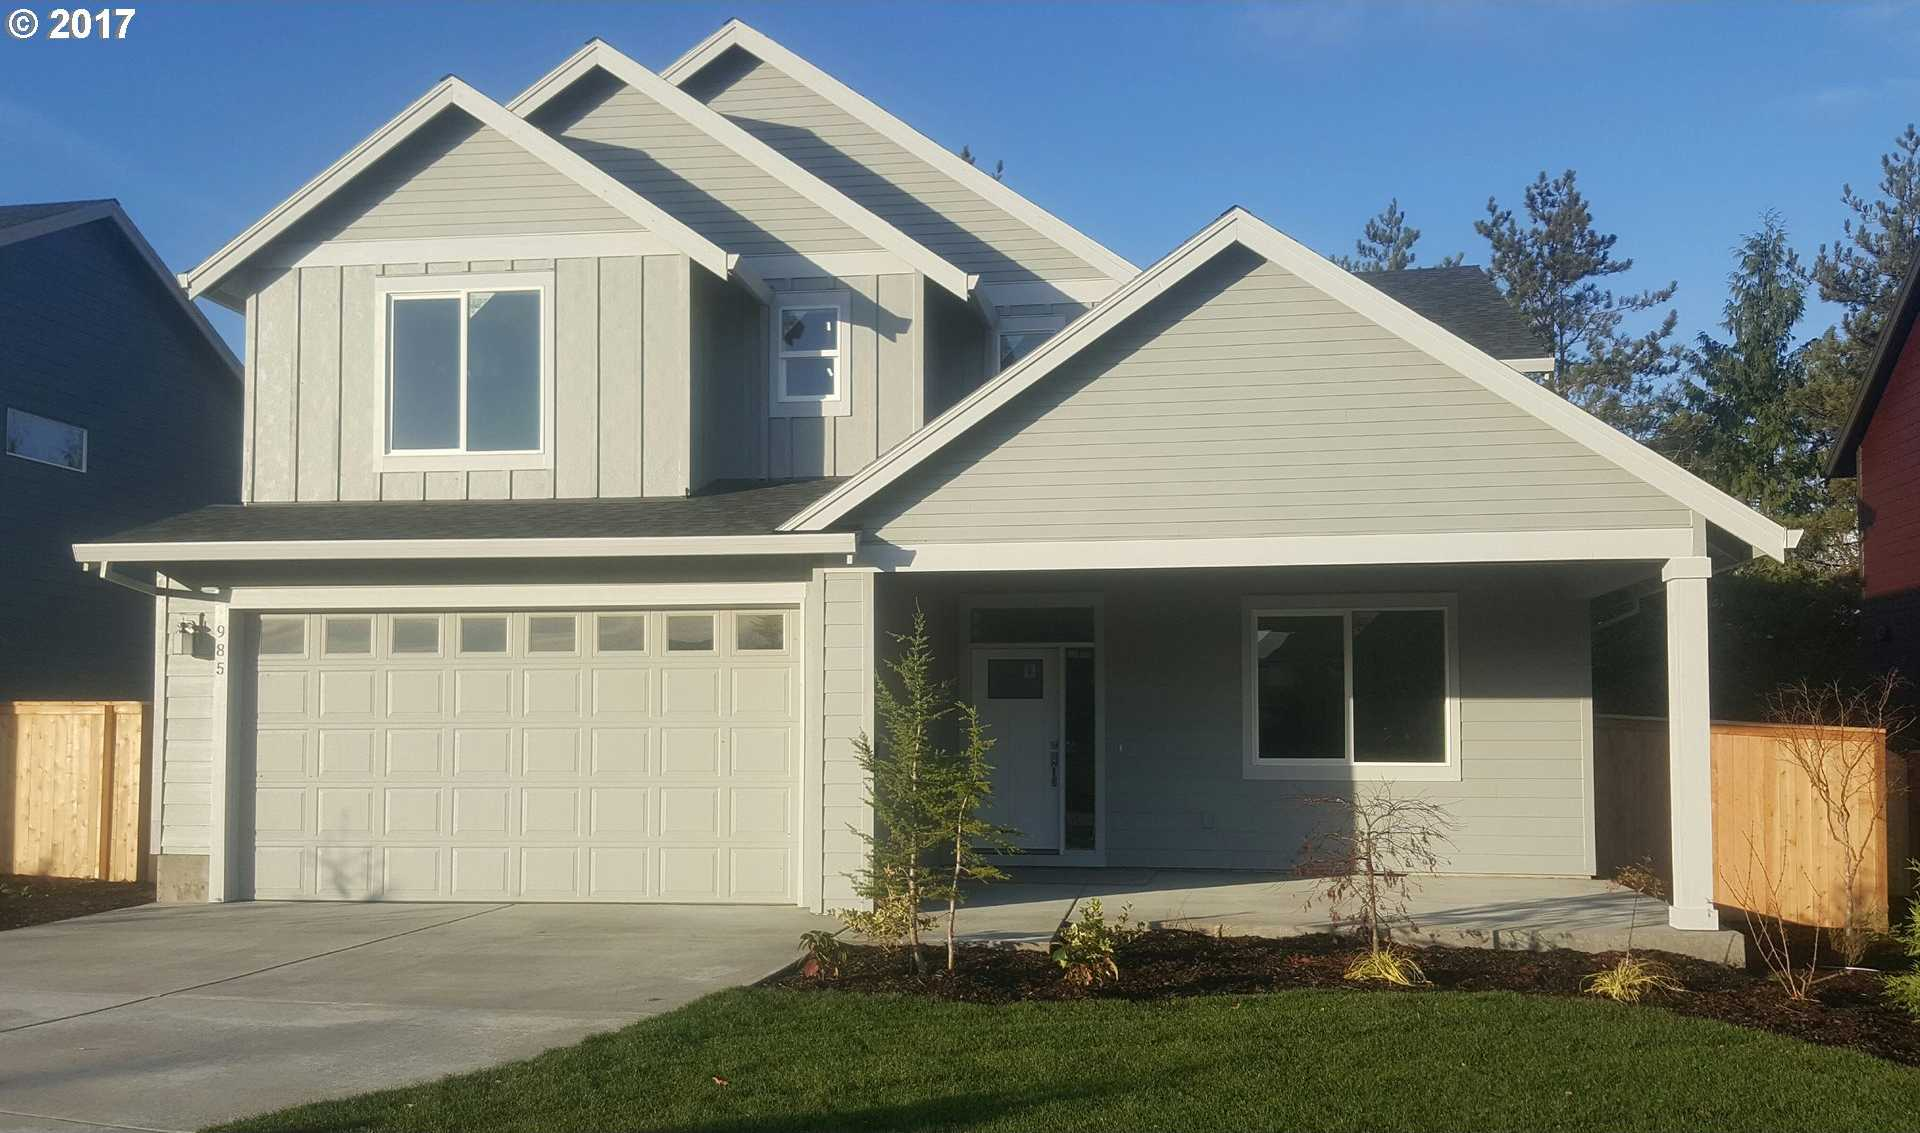 $459,900 - 4Br/3Ba -  for Sale in Gateway Estates, Troutdale